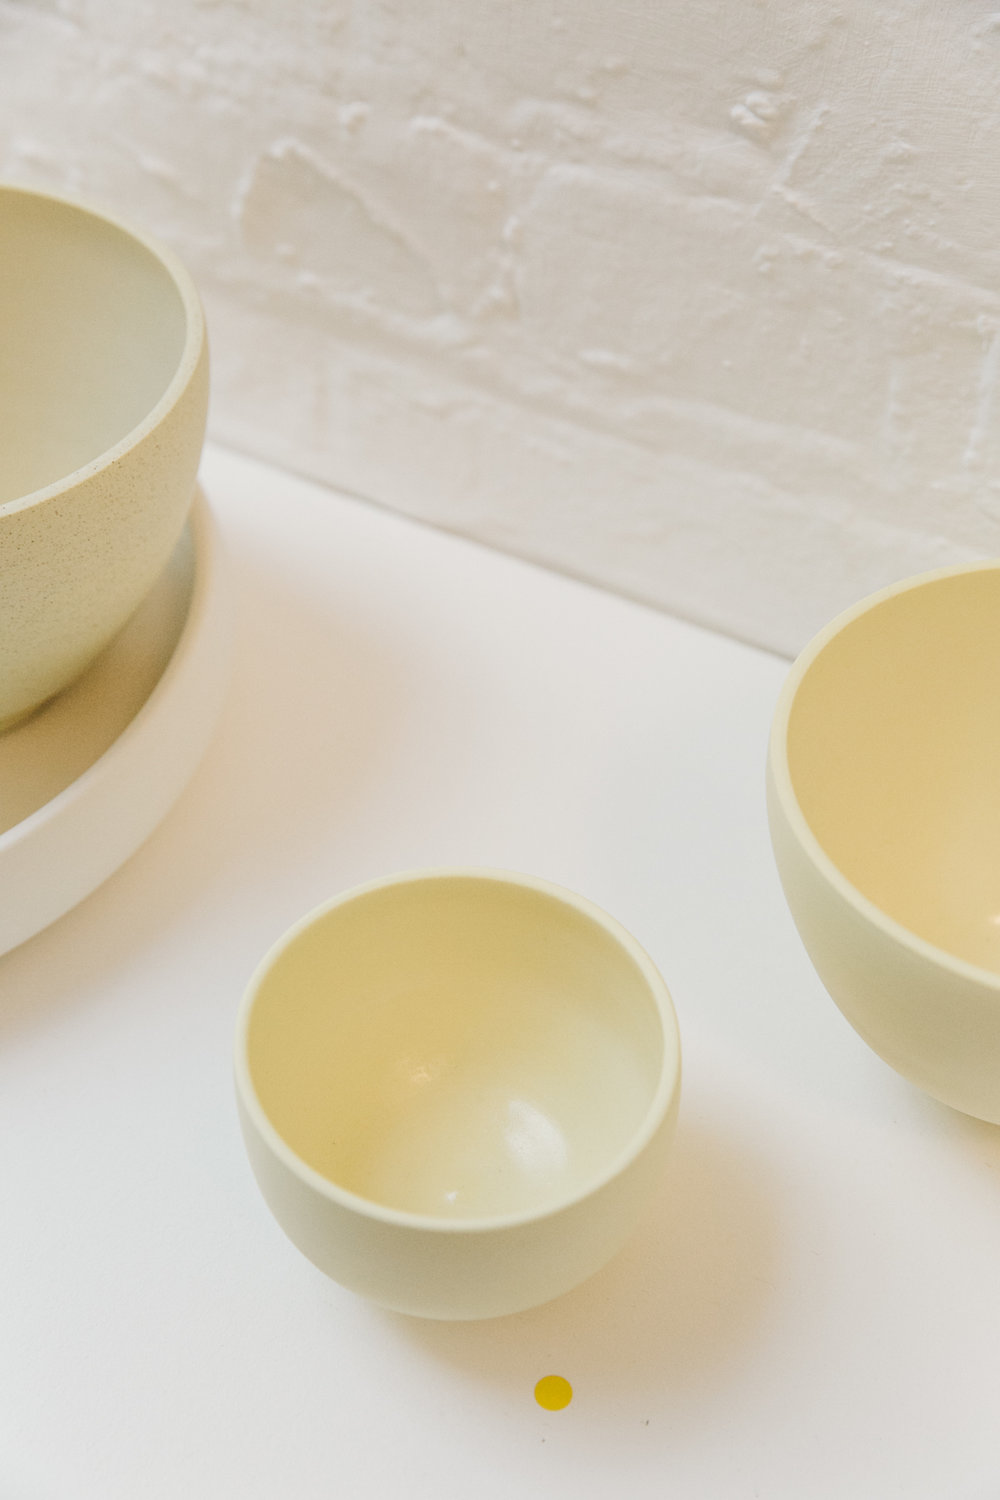 Luke Eastop's yellow ceramic bowls.